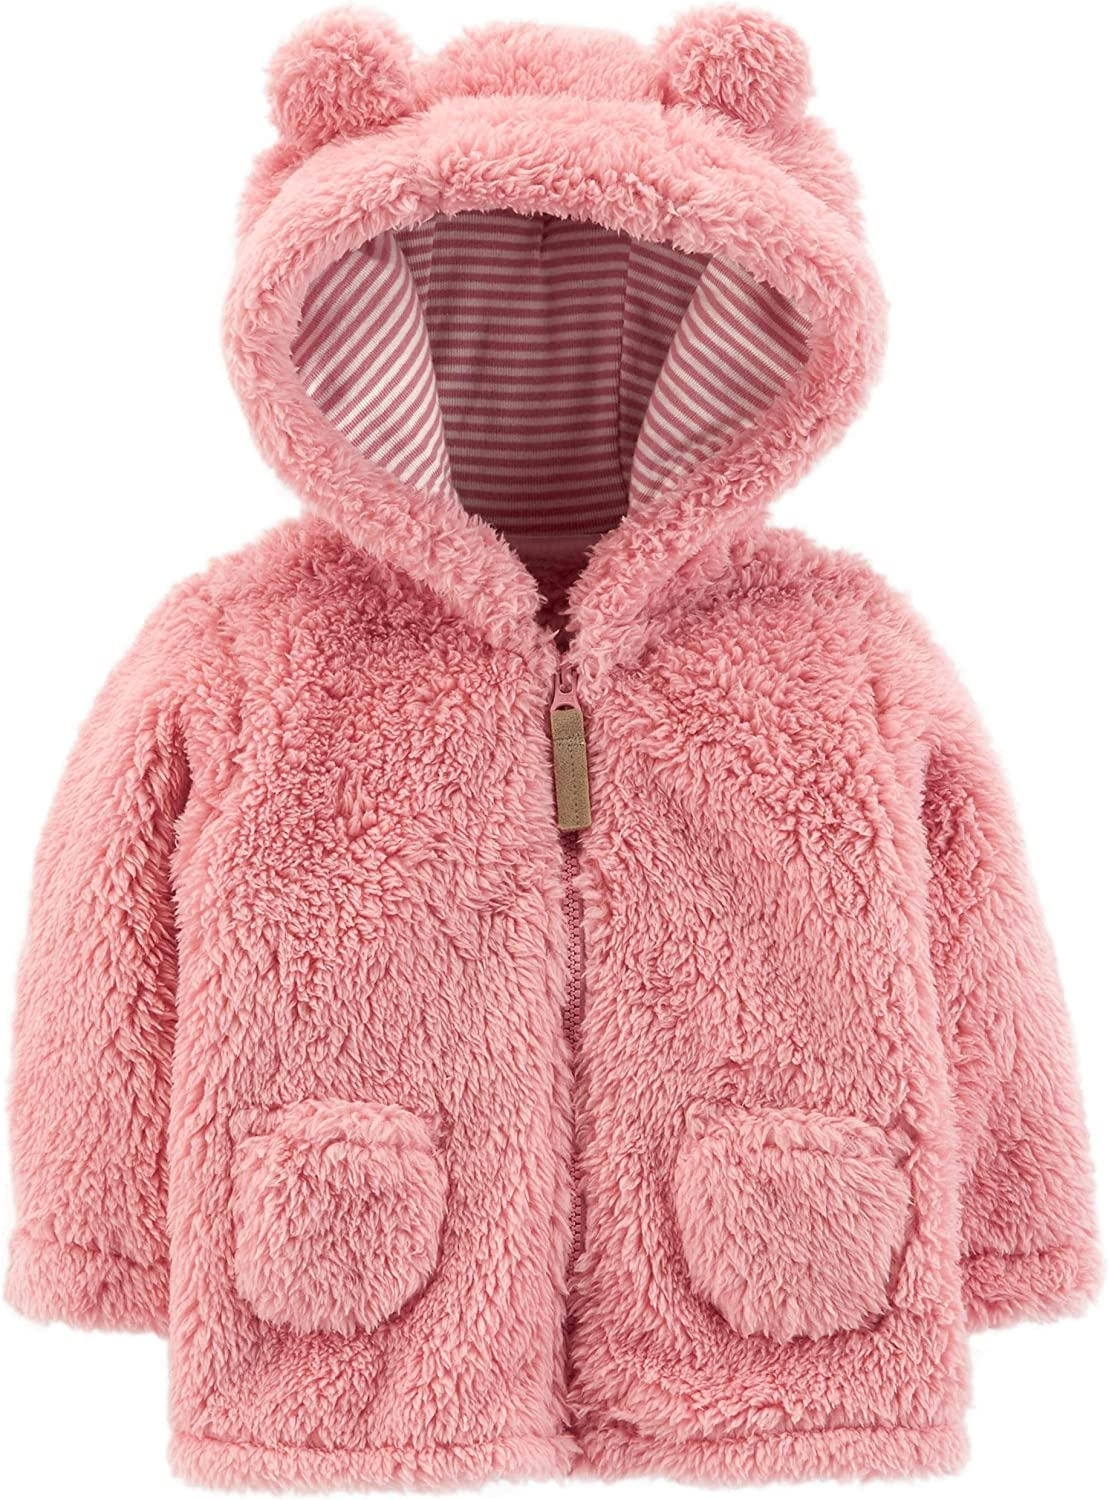 Carter's sold out Baby Girls' Hooded Sherpa Jacket Newborn Max 50% OFF